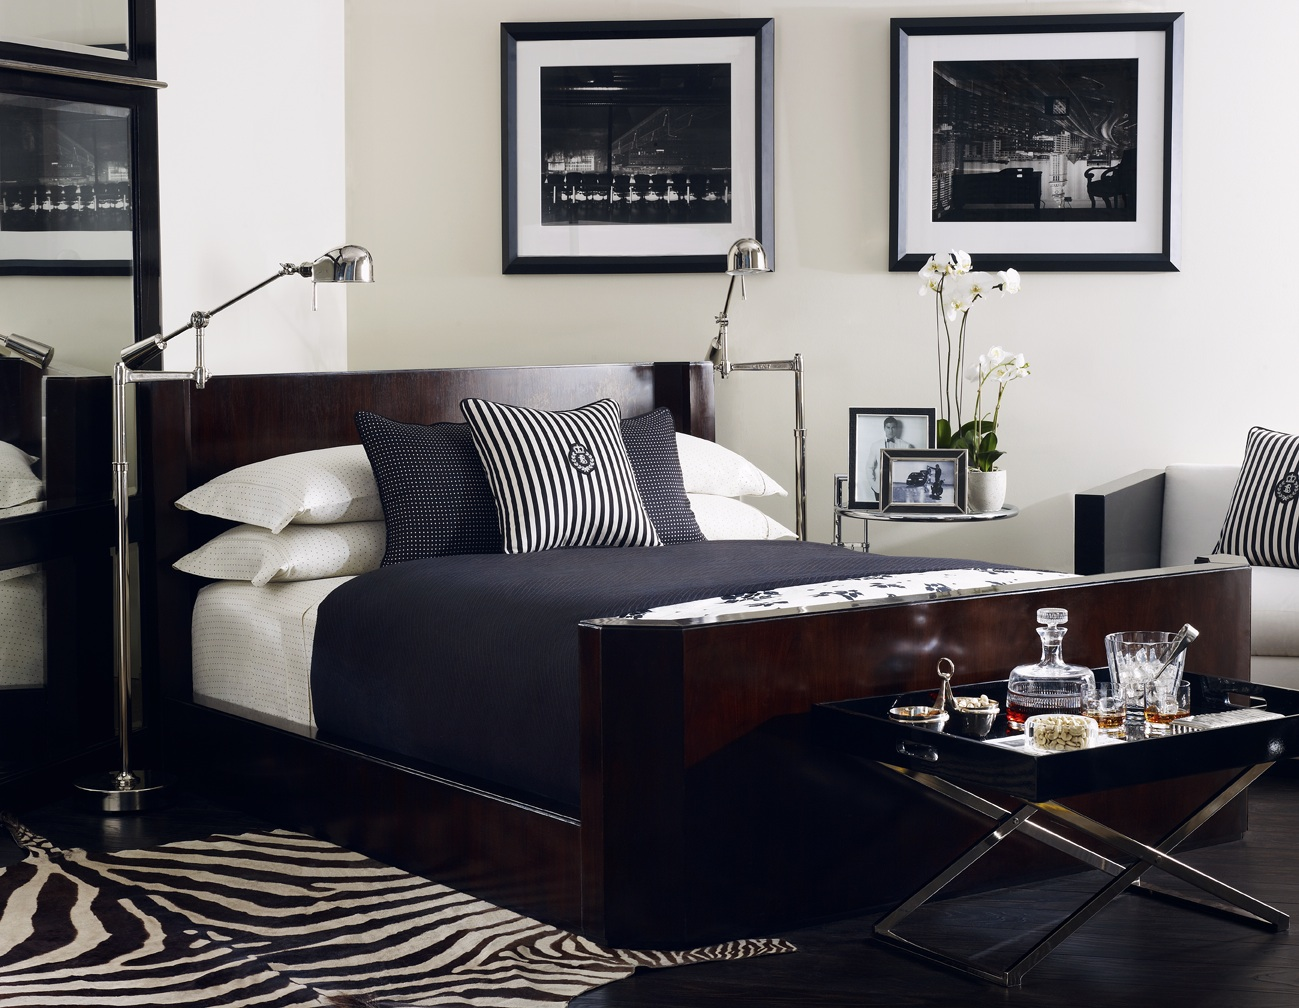 information about home design giveaway lauren ralph. Black Bedroom Furniture Sets. Home Design Ideas